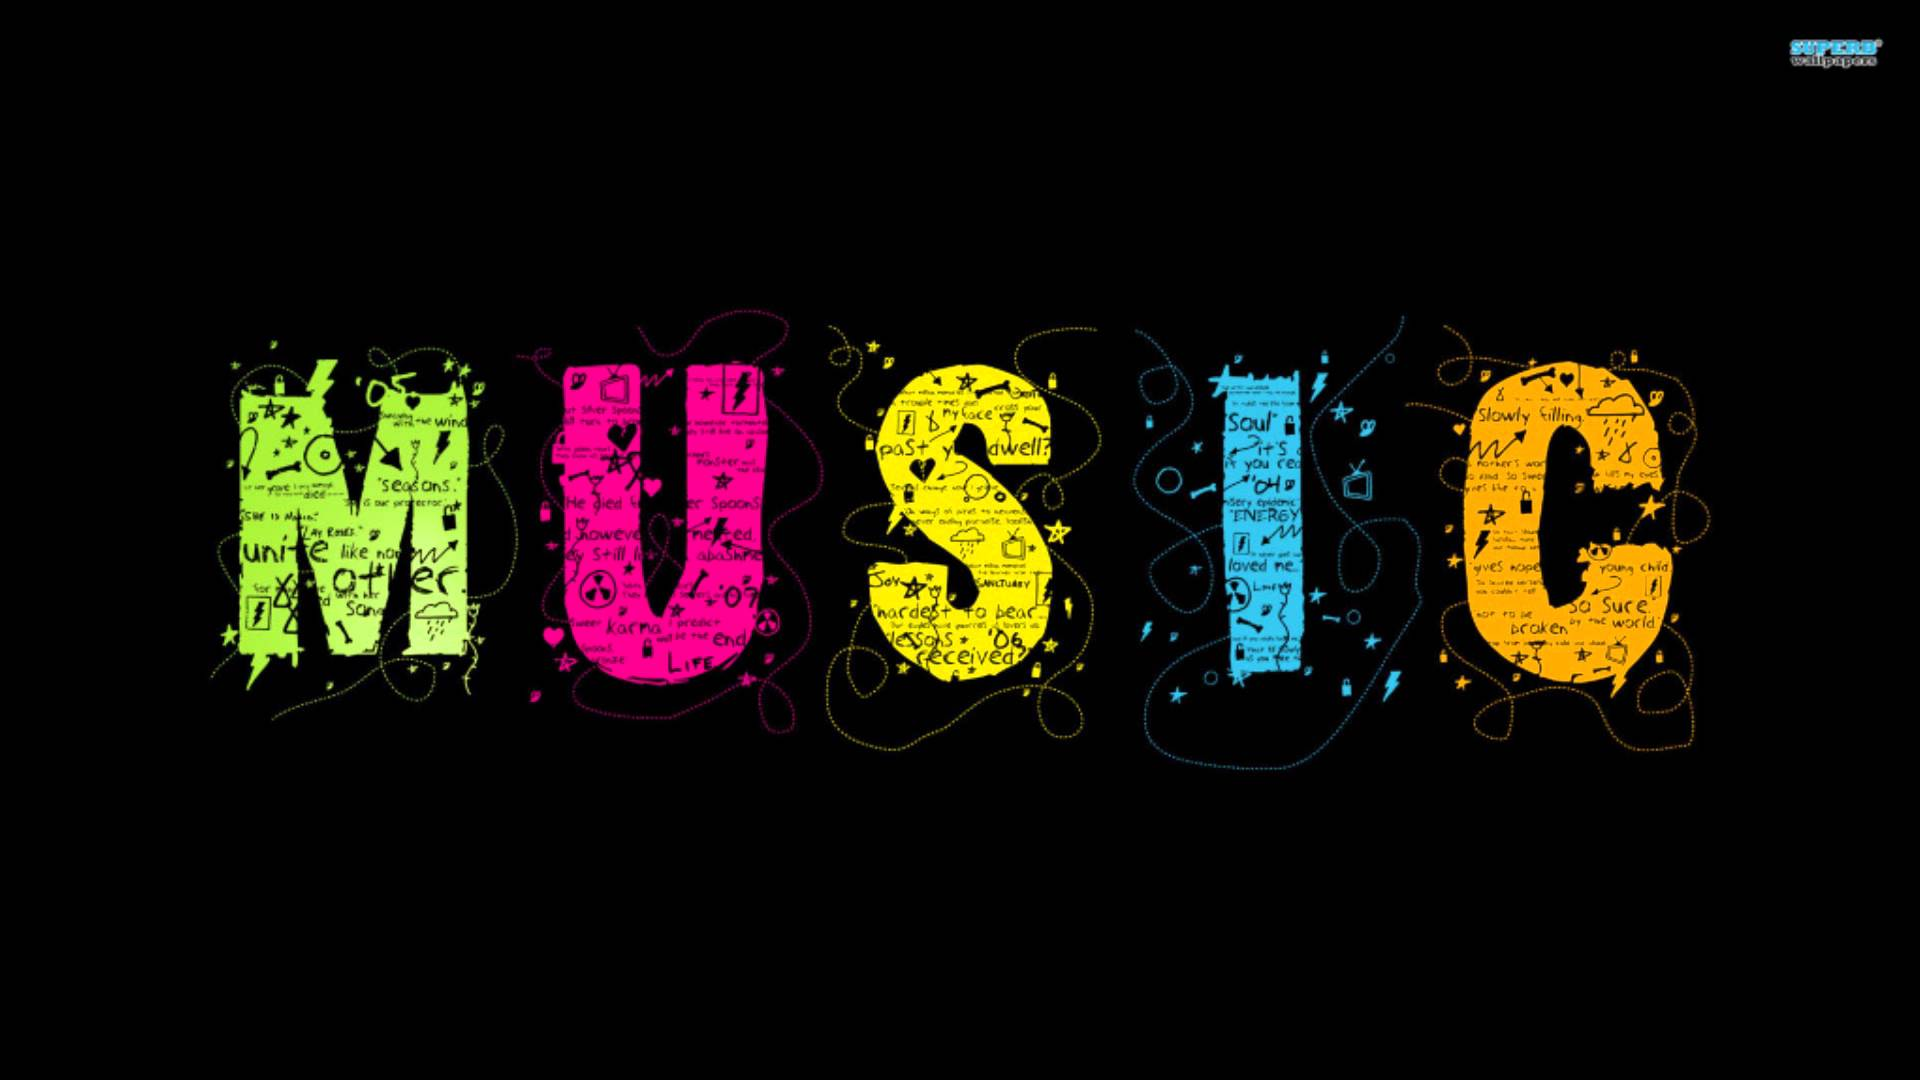 Free pc hd wallpapers music instrument images download.